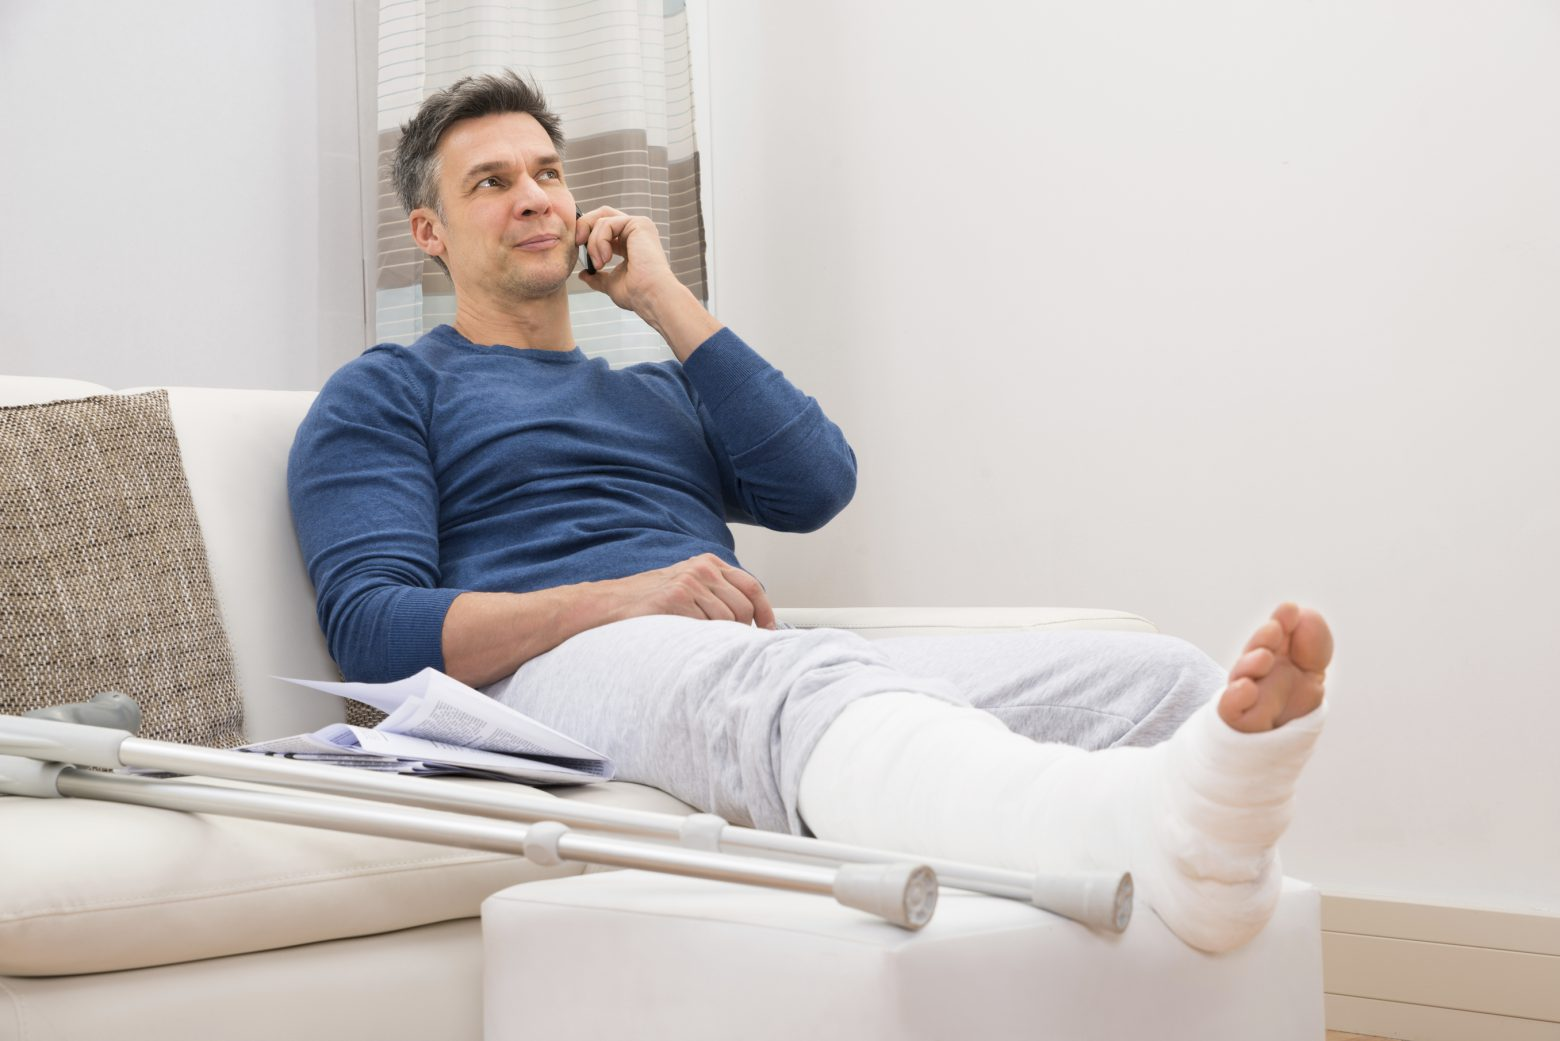 Injured man on the phone